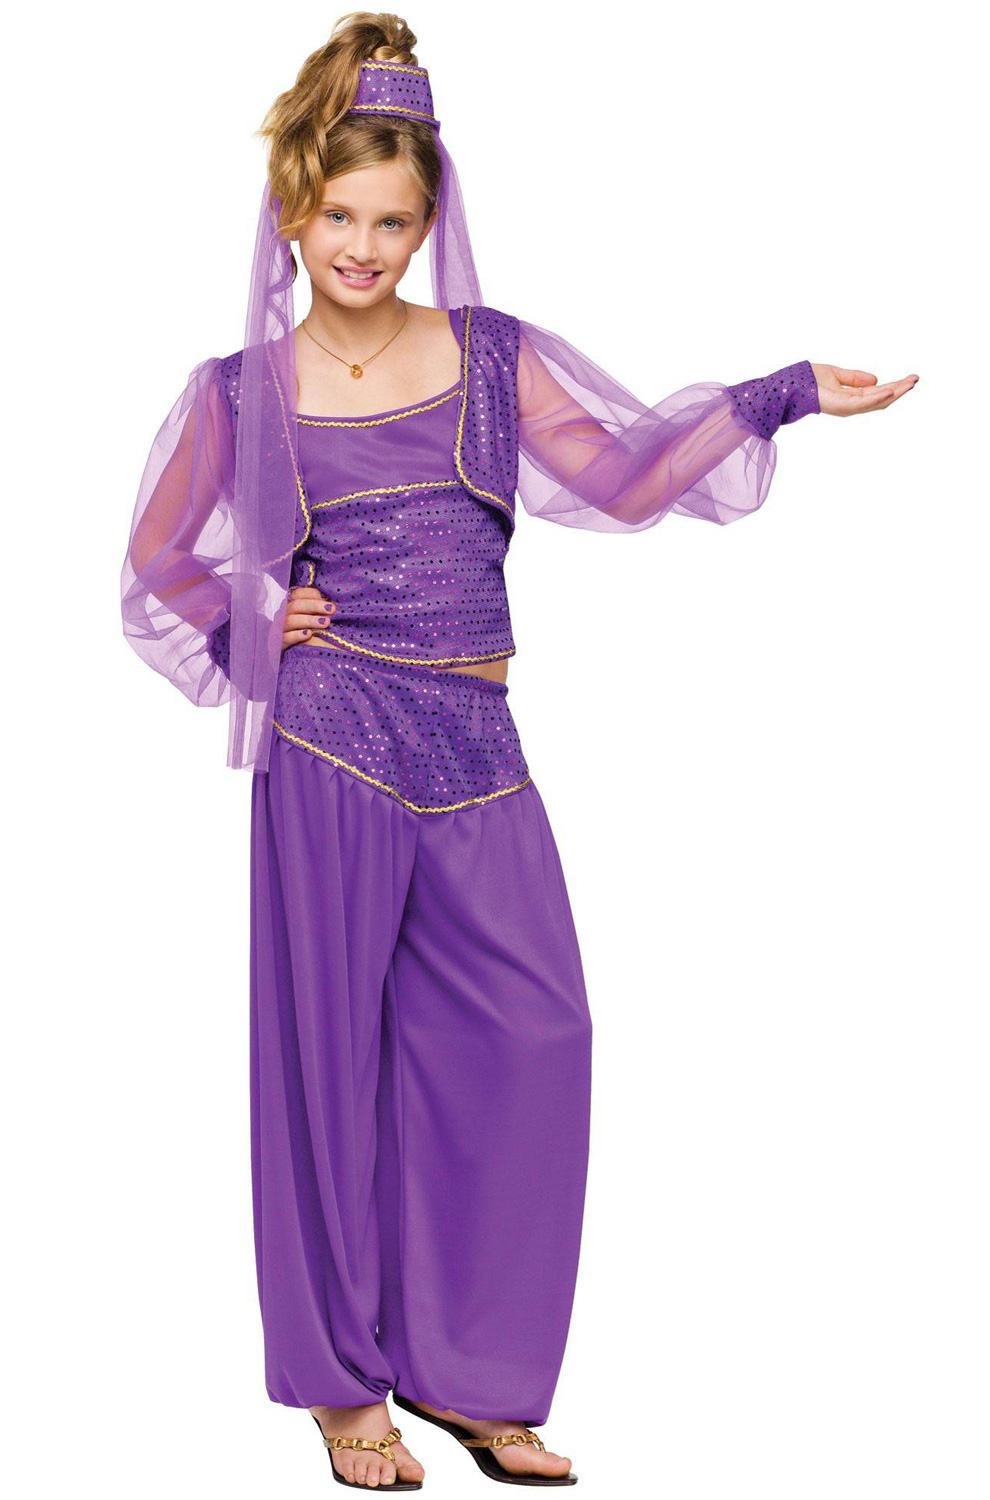 Dreamy Genie Child Costume